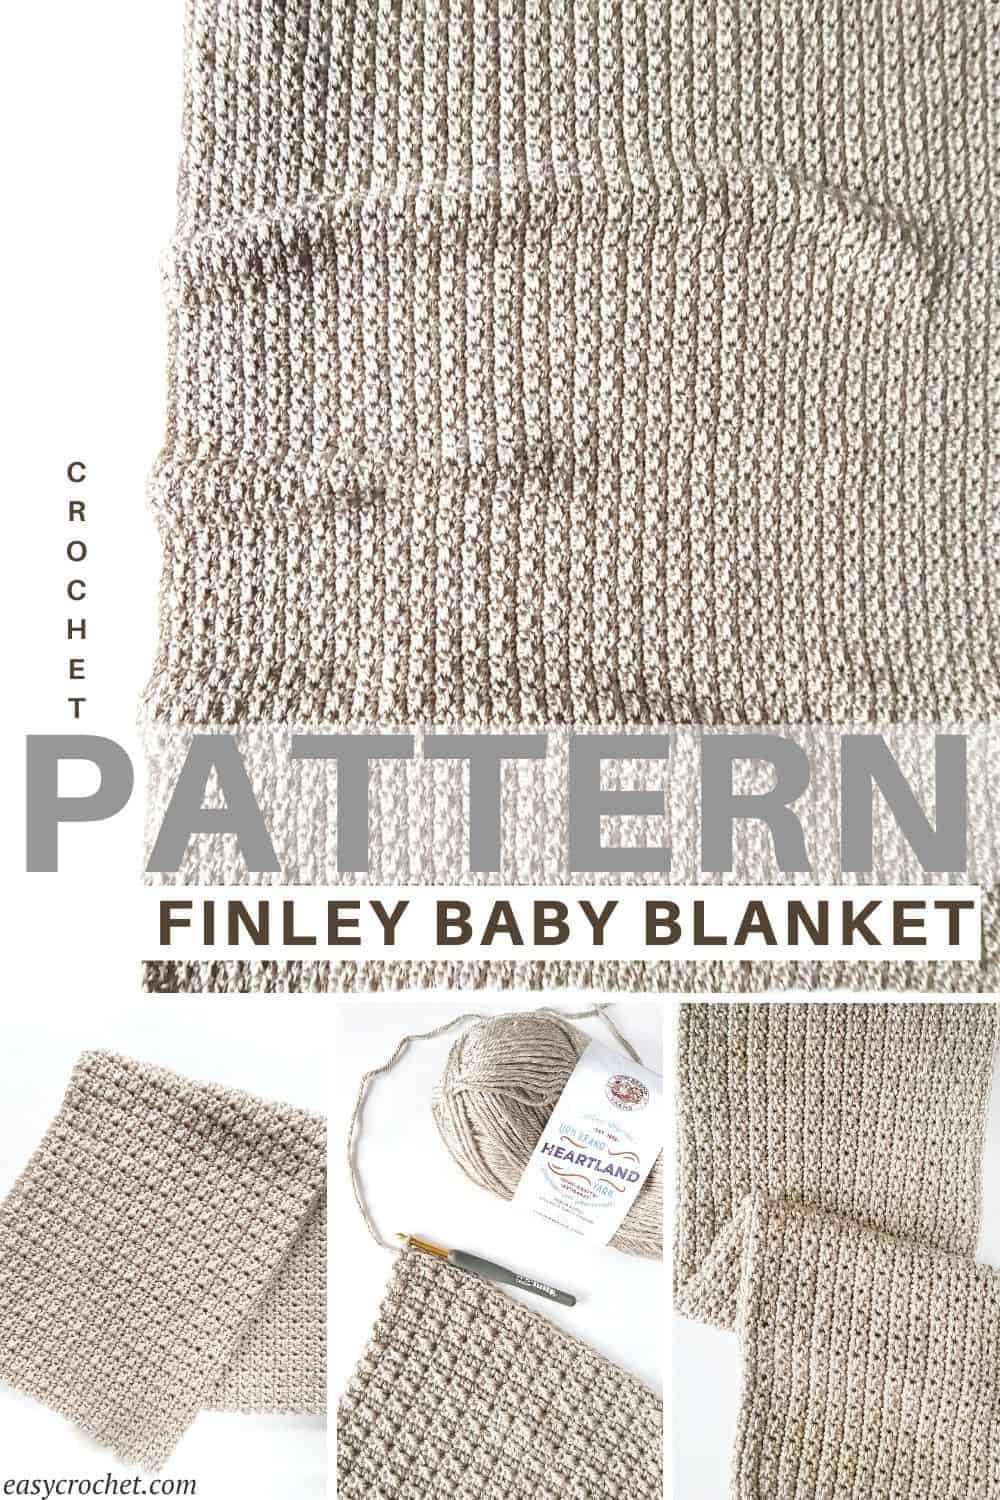 Free Crochet Baby Blanket Pattern with easy crochet stitches